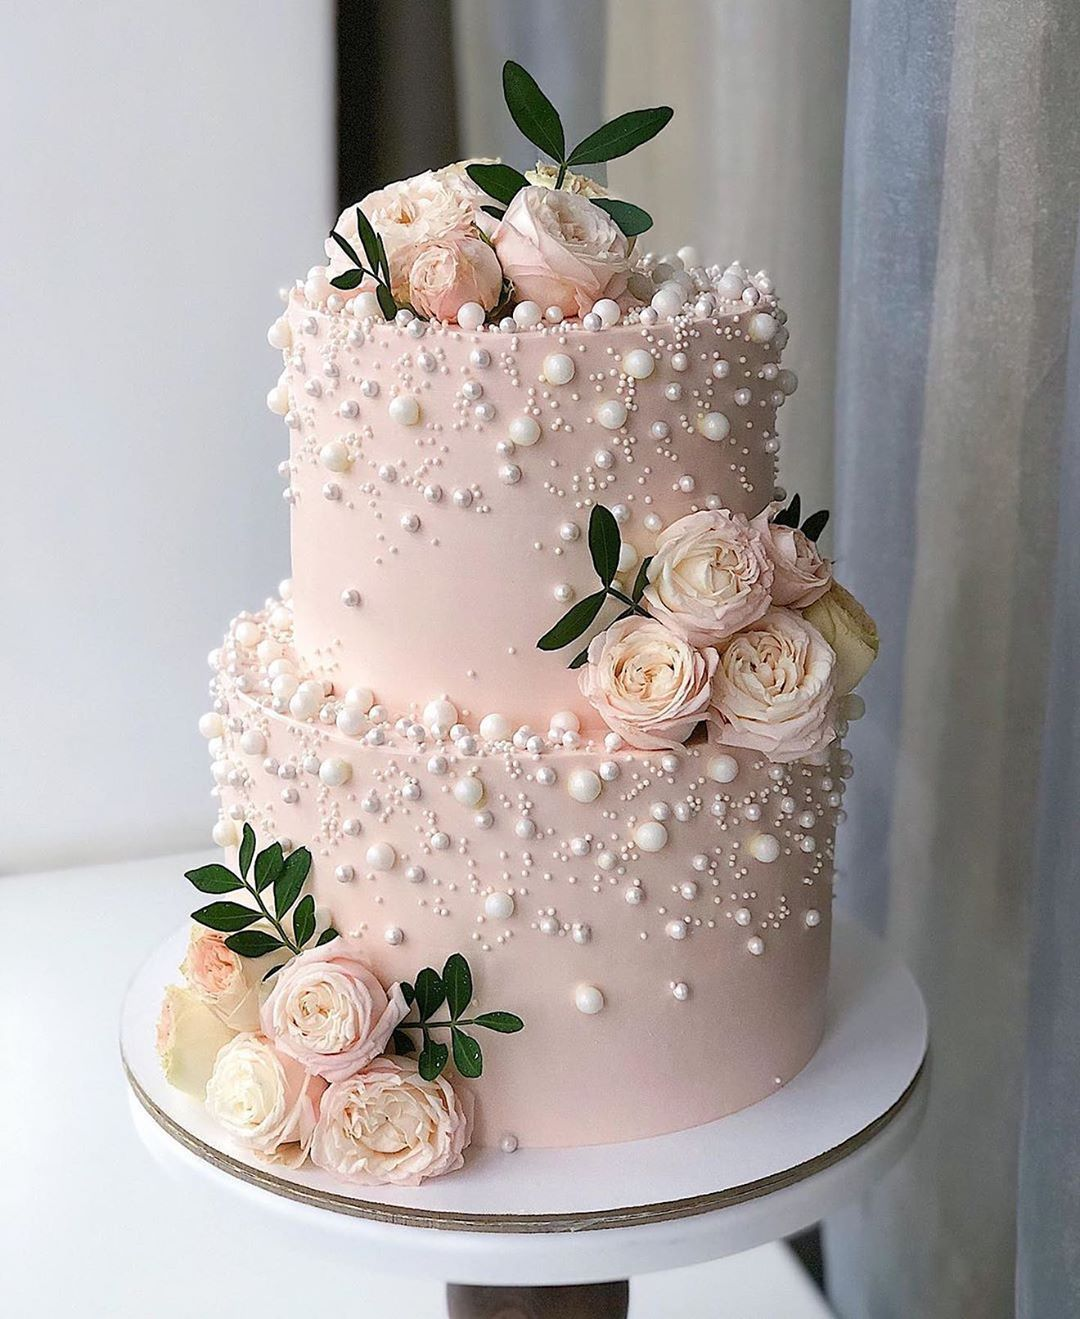 The Wedding Bliss On Instagram Such A Beautiful Cake Amazing Work By Kasadelika Floral Wedding Cakes Simple Wedding Cake Fall Wedding Cakes